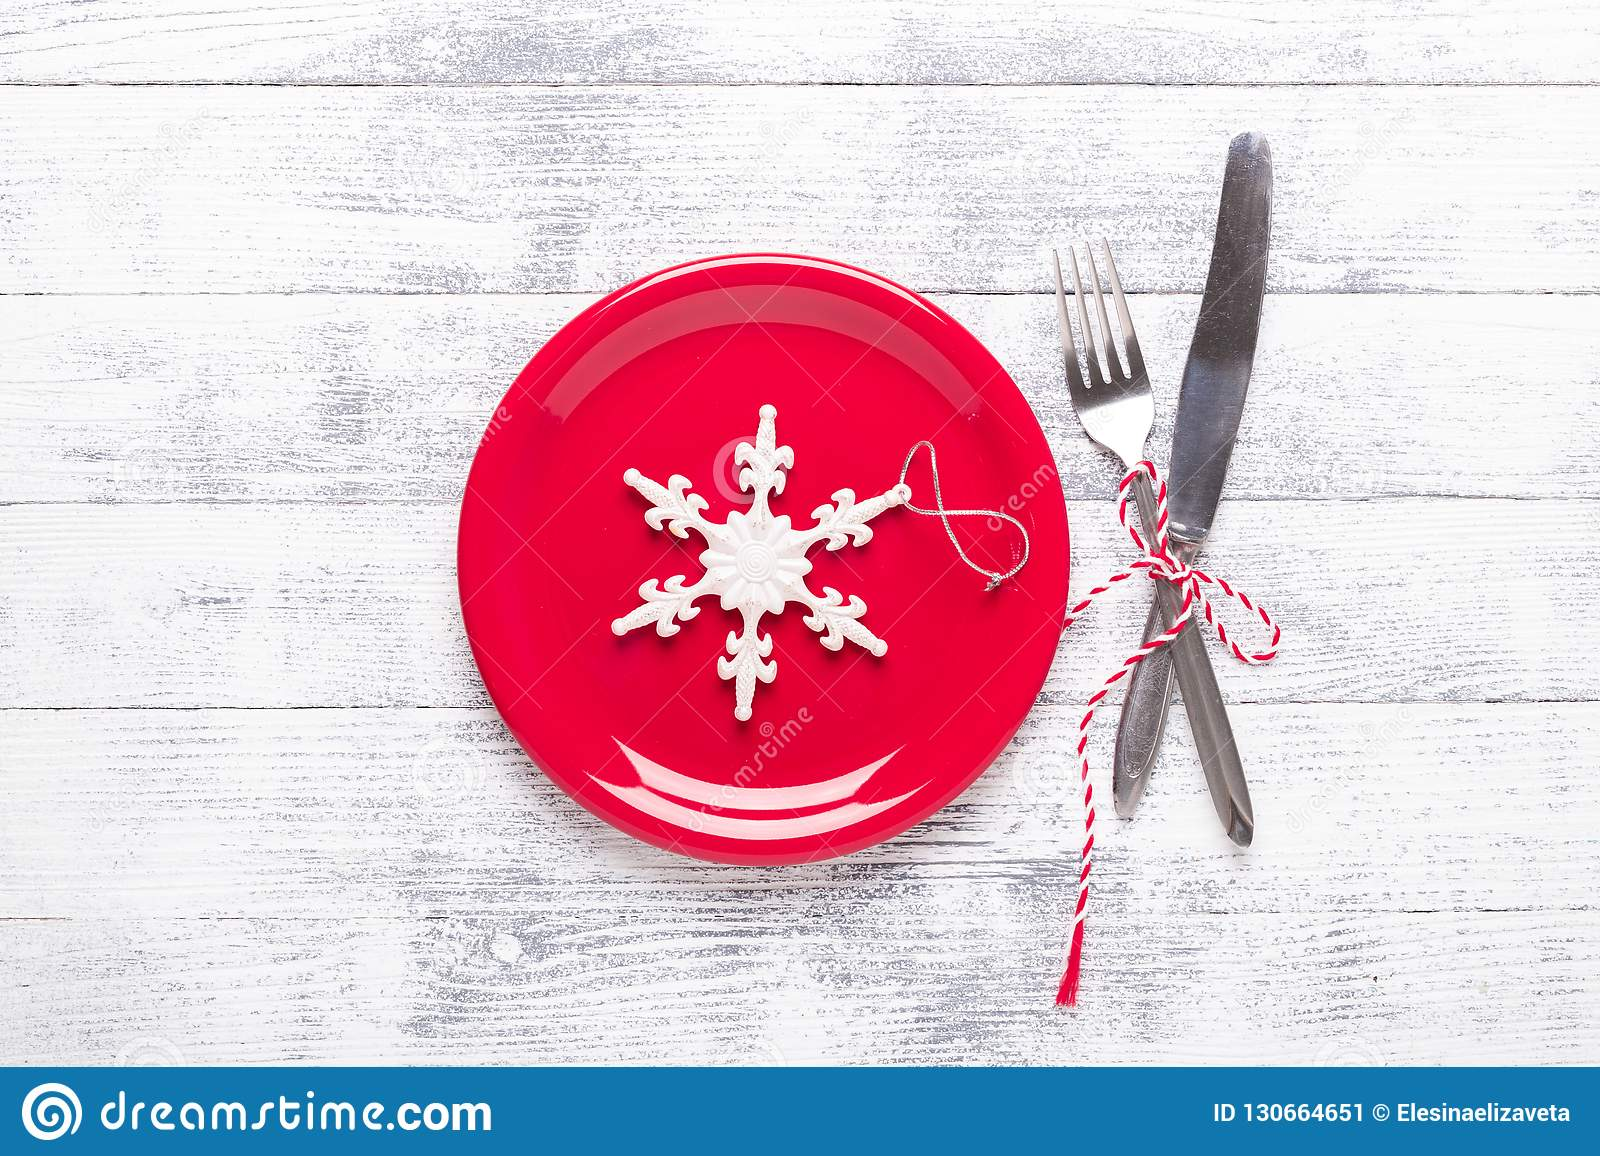 Phenomenal Christmas Table Setting With Red Plate Silverware On Light Download Free Architecture Designs Grimeyleaguecom